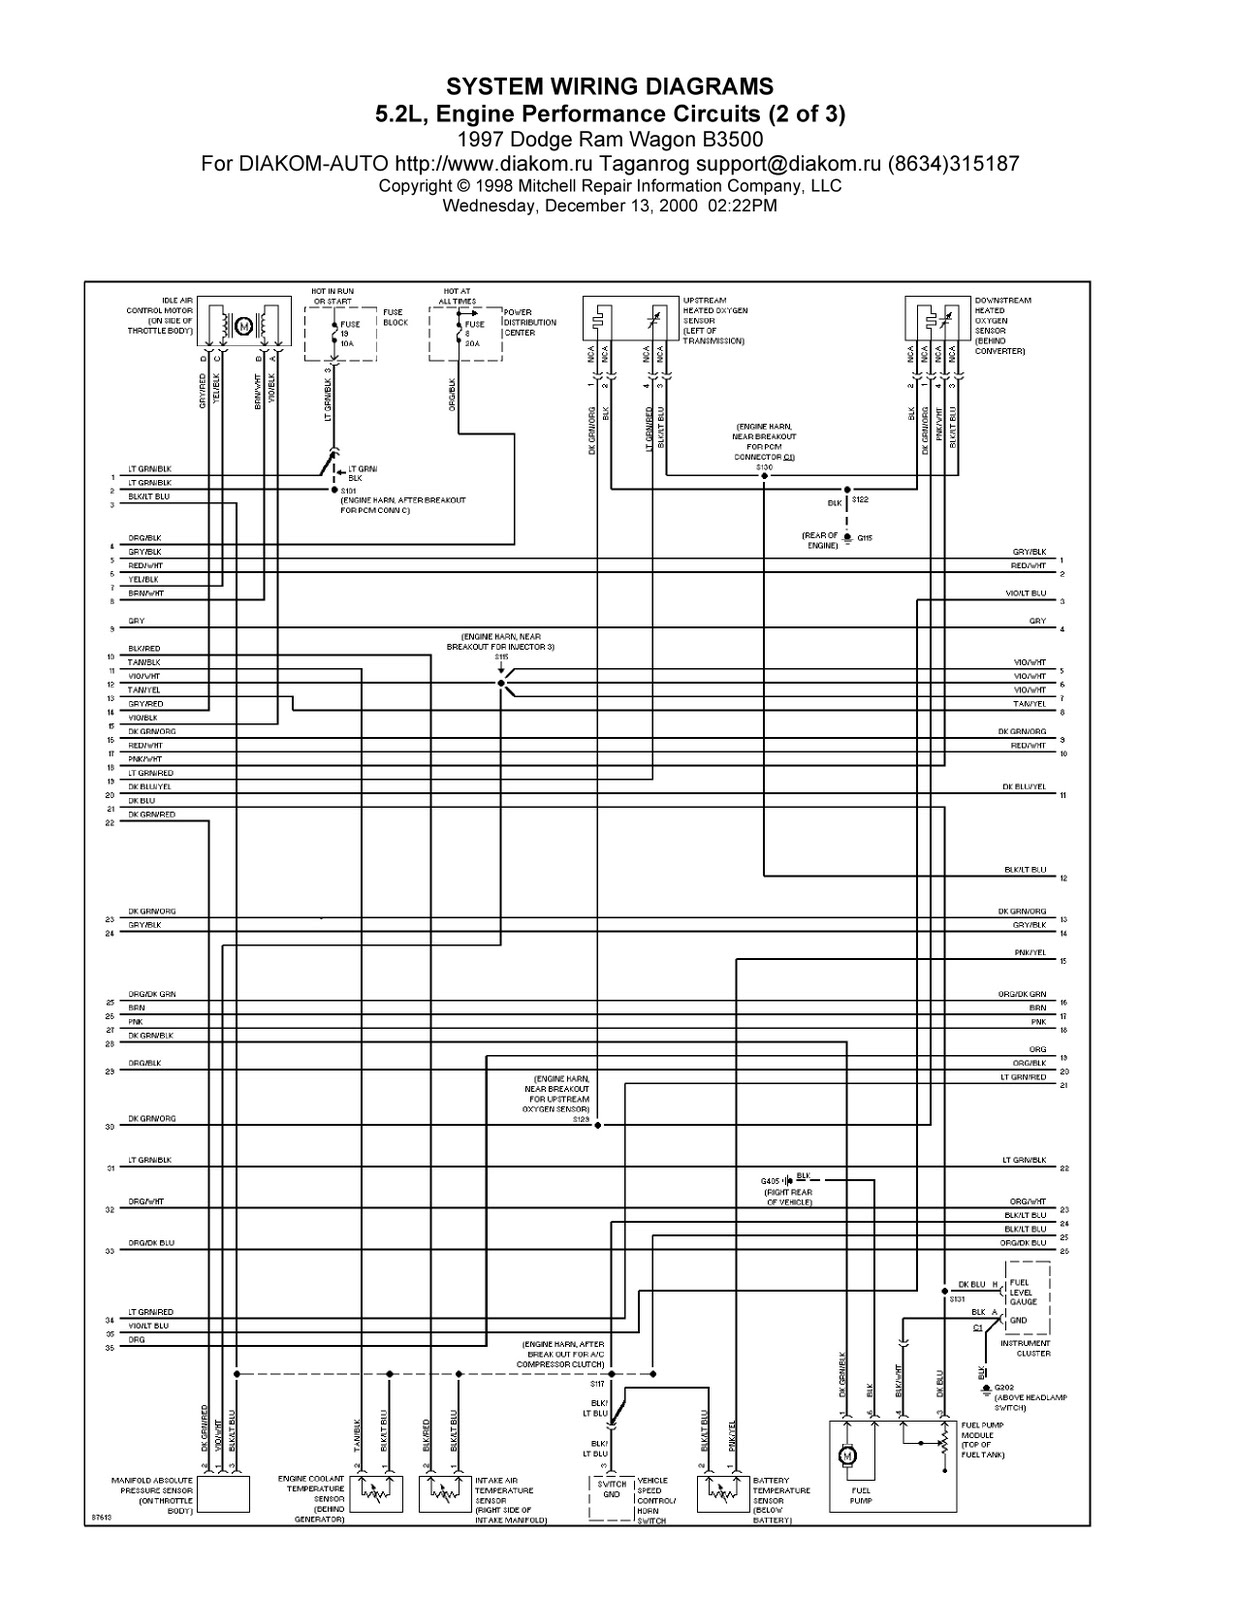 may 2011 | schematic wiring diagrams solutions ford taurus fuel system wiring schematic 1991 ford taurus lx system wiring diagram for keyless entry